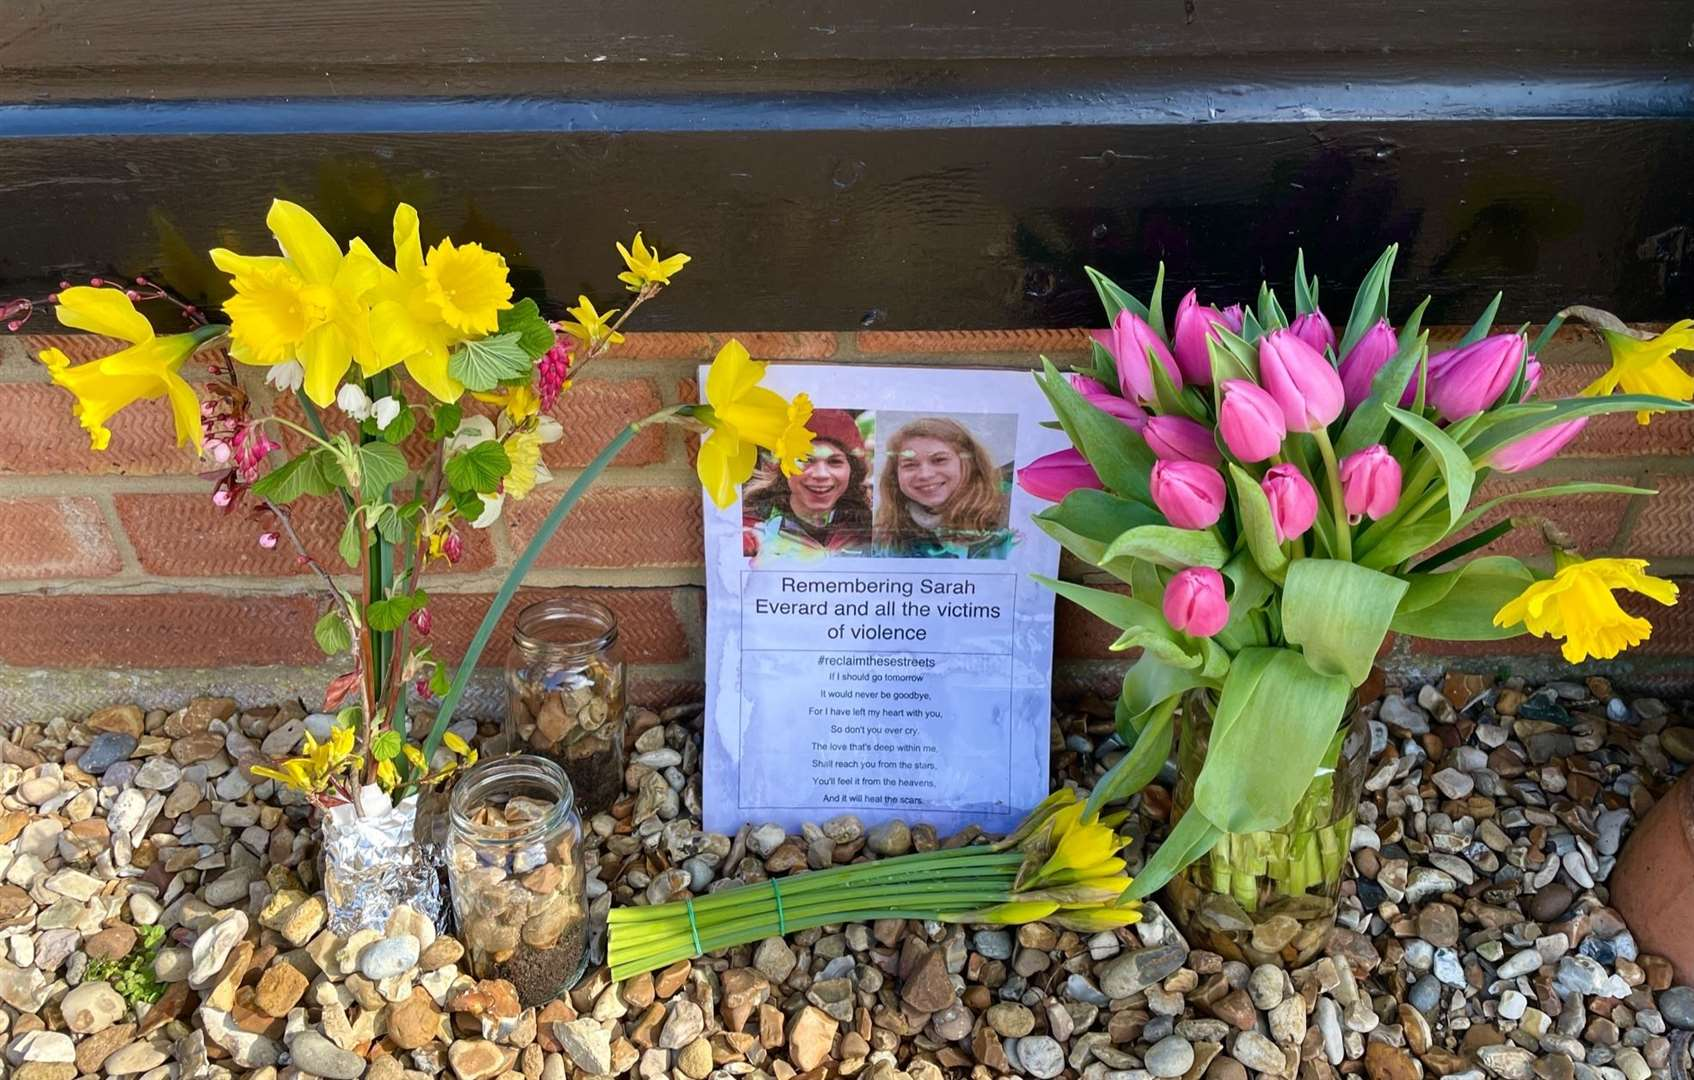 Flowers outside of North Wootton Village Hall in memory of Sarah Everard (45160587)